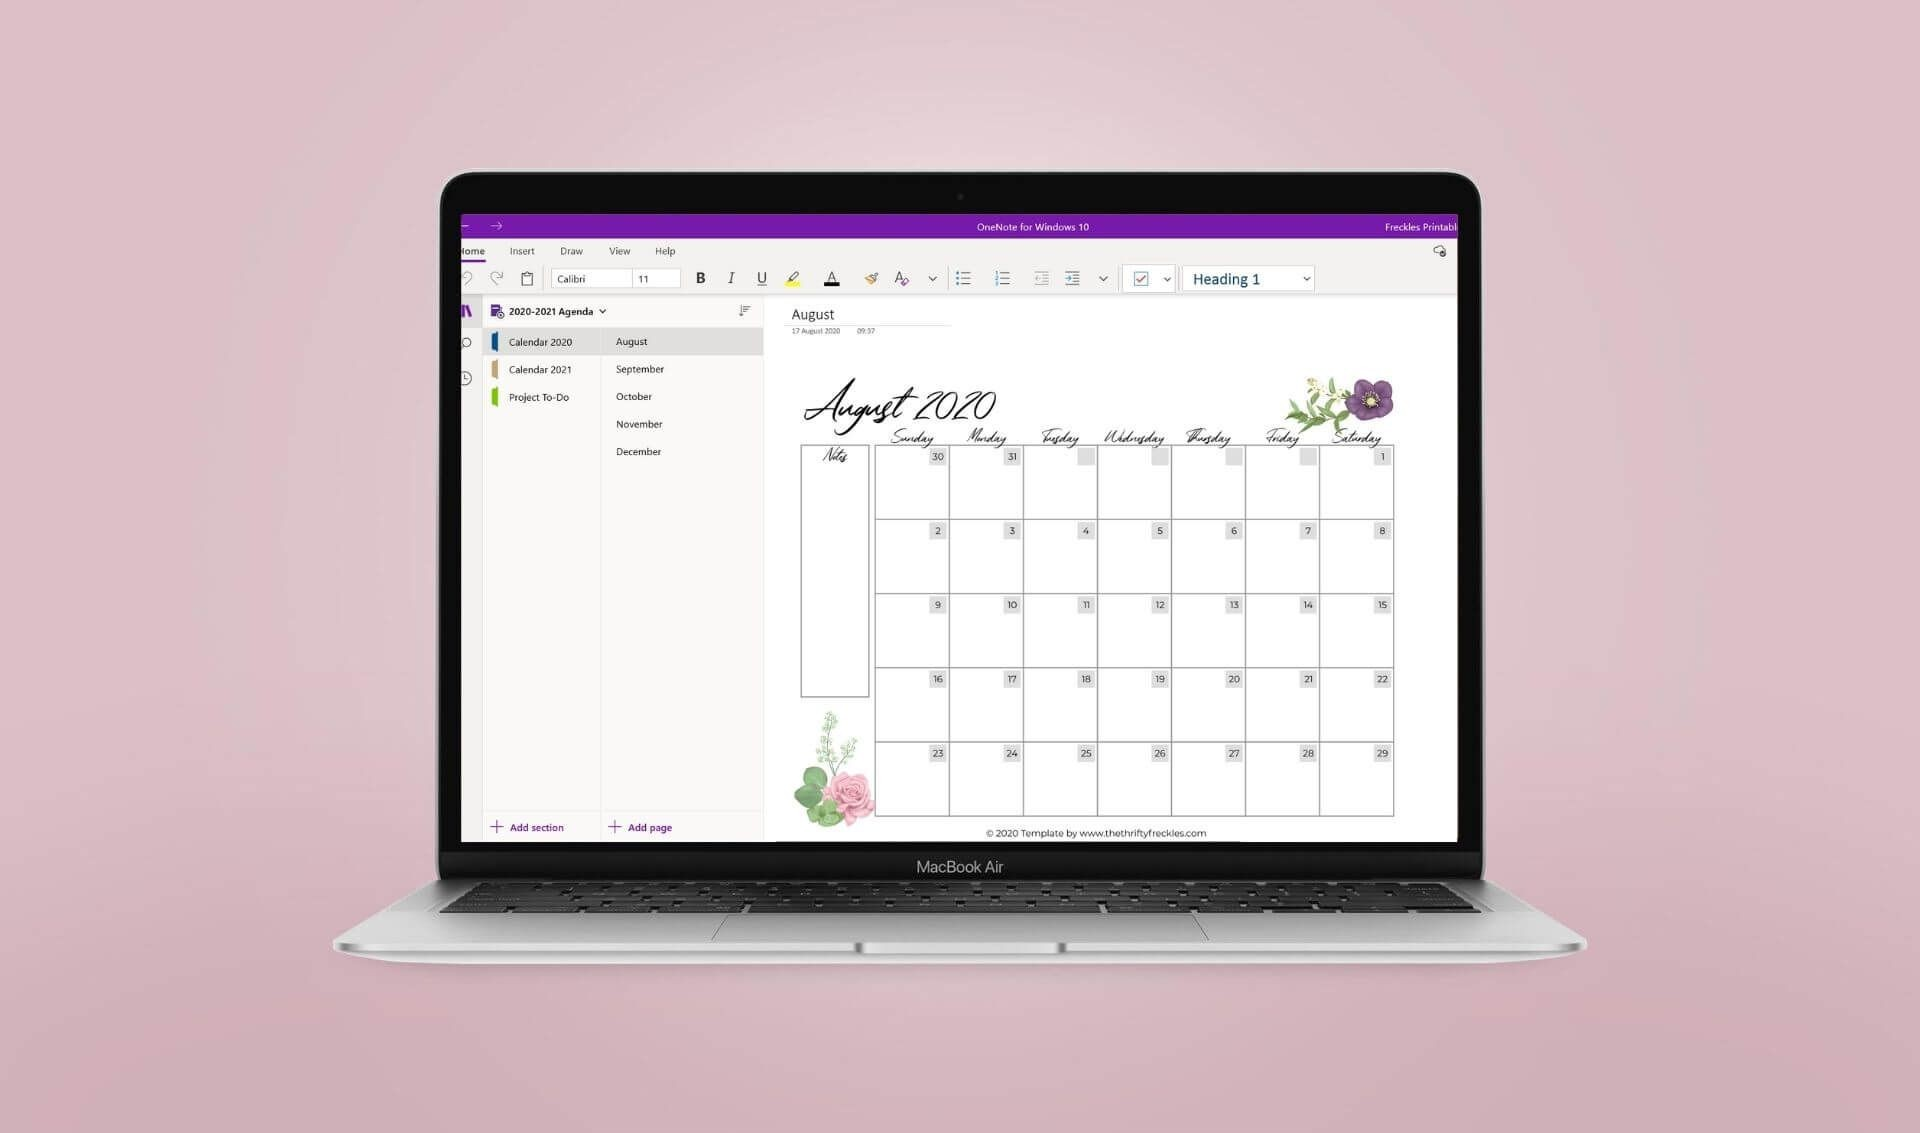 002 Remarkable Onenote Project Management Template Download Highest Quality 1920